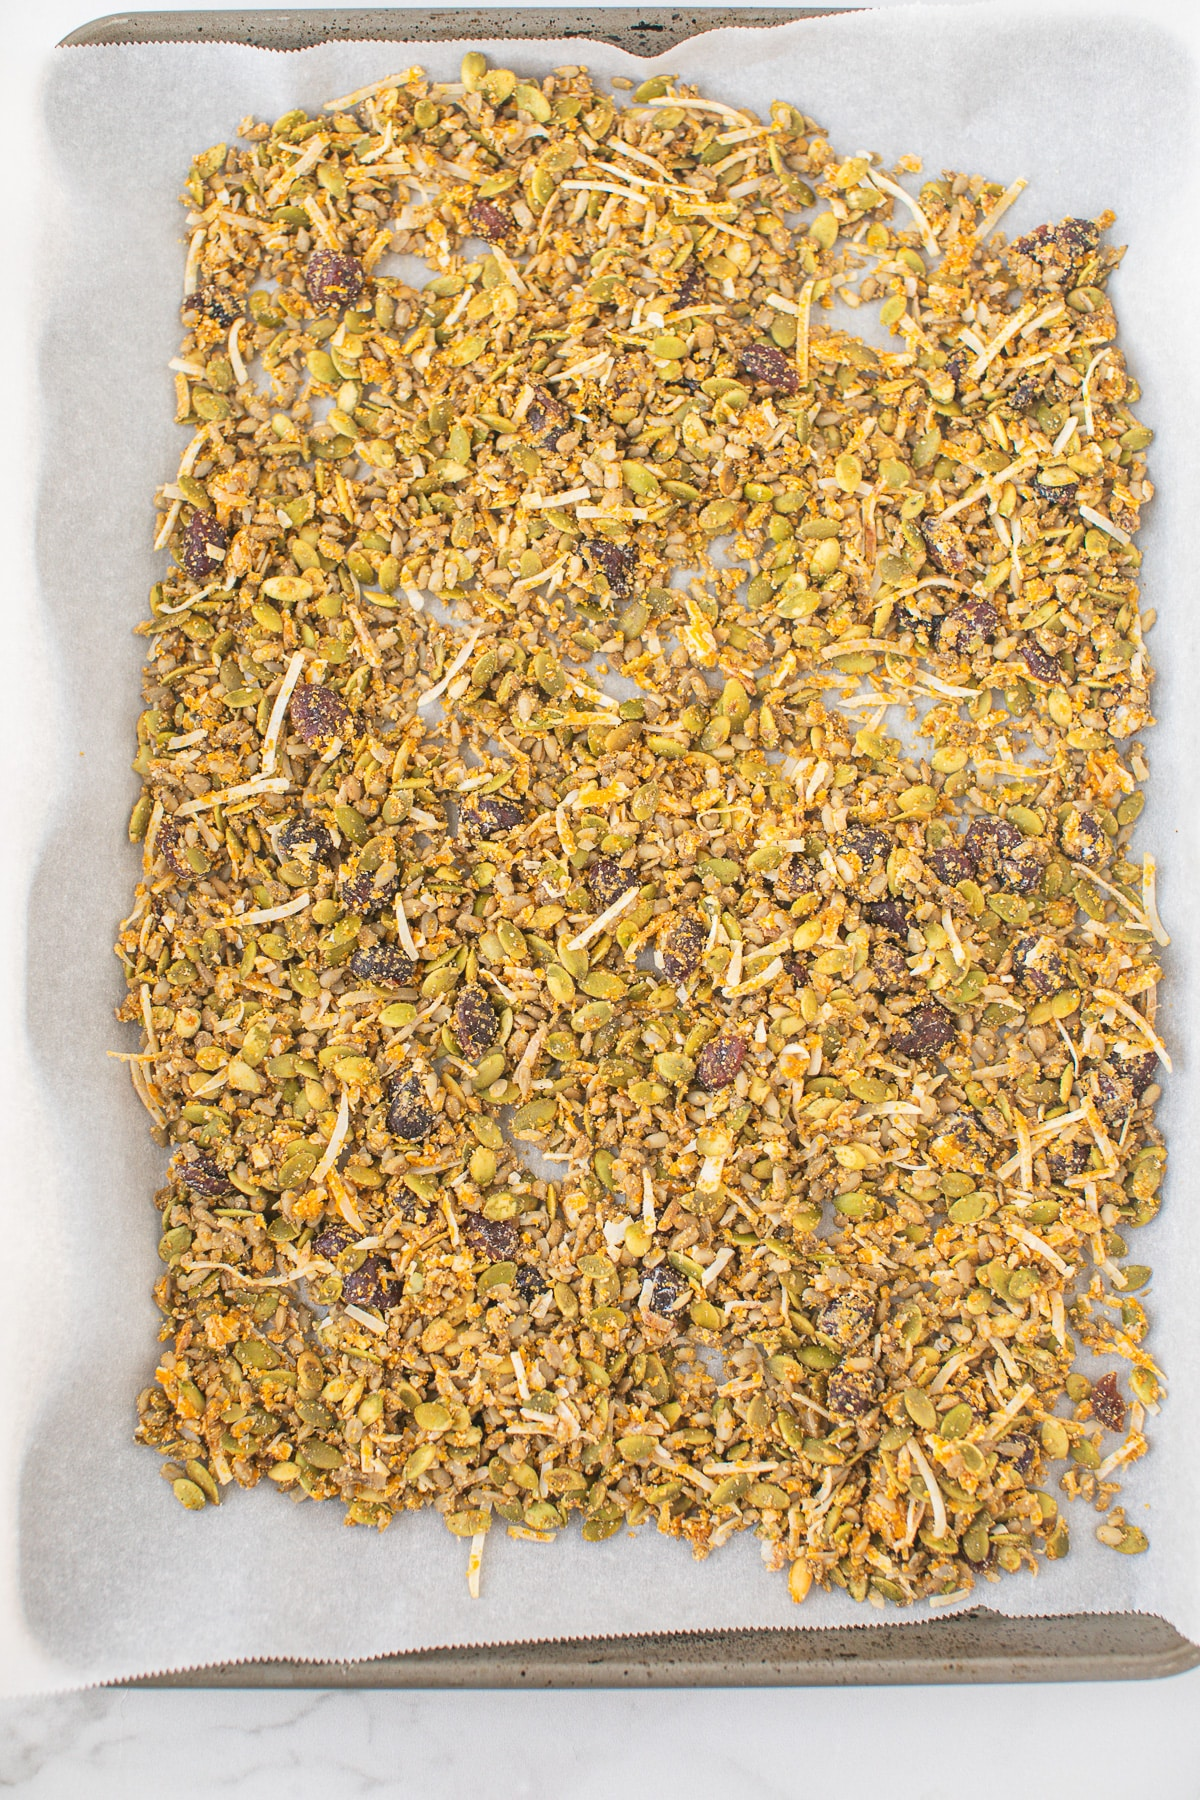 granola on a baking sheet ready to be cooked